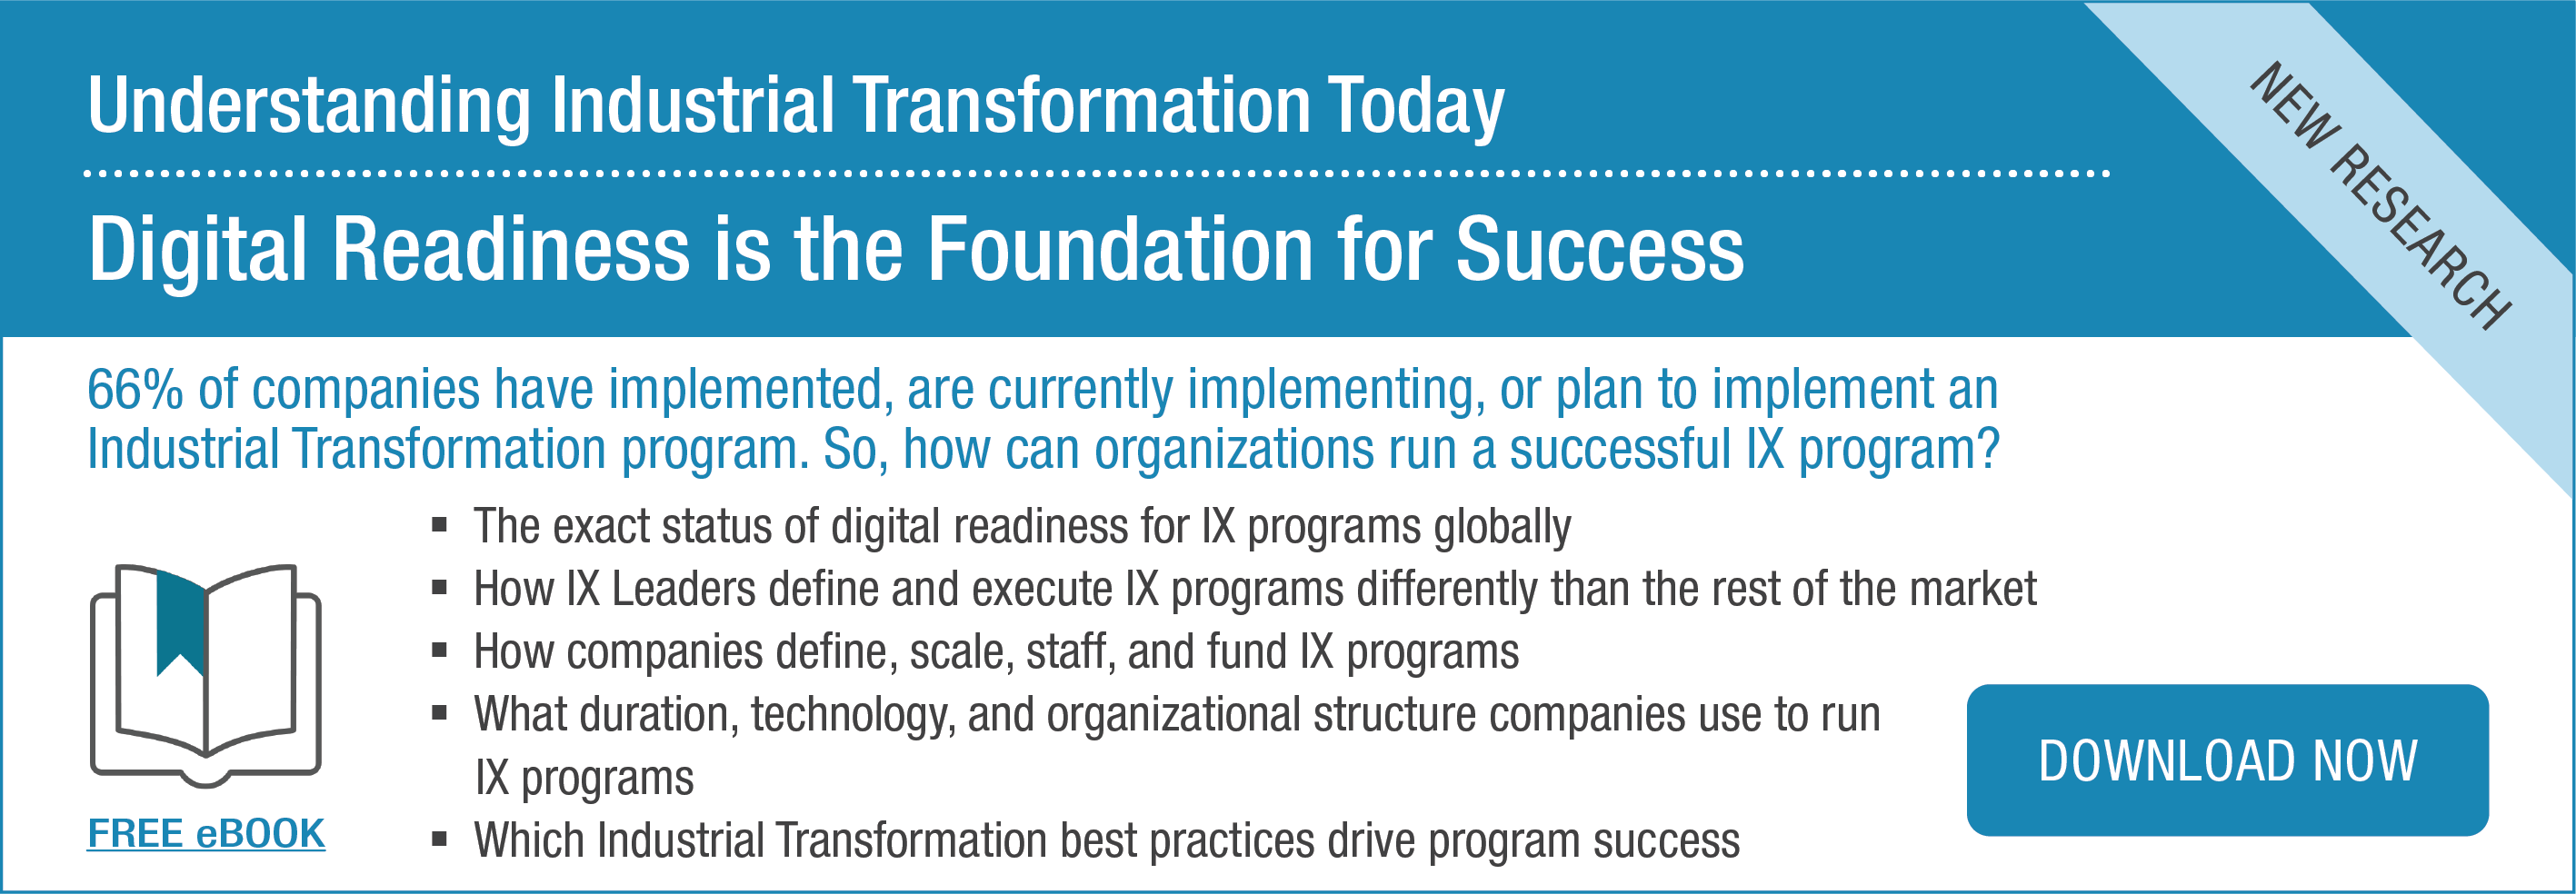 Ebook | Understanding Industrial Transformation (IX) Today: Digital Readiness is the Foundation for Success